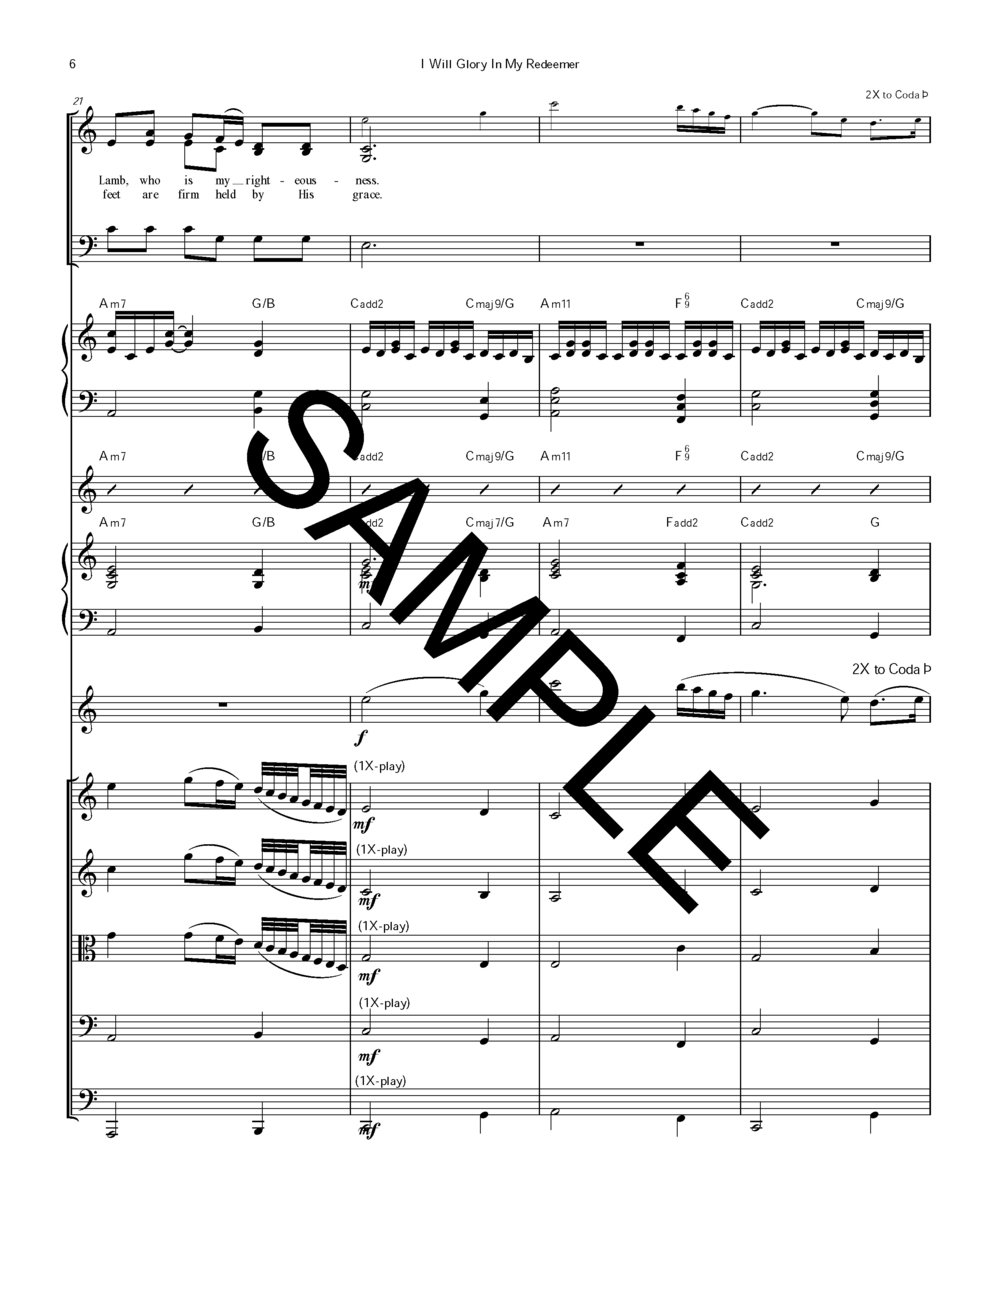 Sample I Will Glory in My Redeemer #196 Strngs Ob Piano Chrd Chrt Orgn M Rice arr_Page_19.jpg